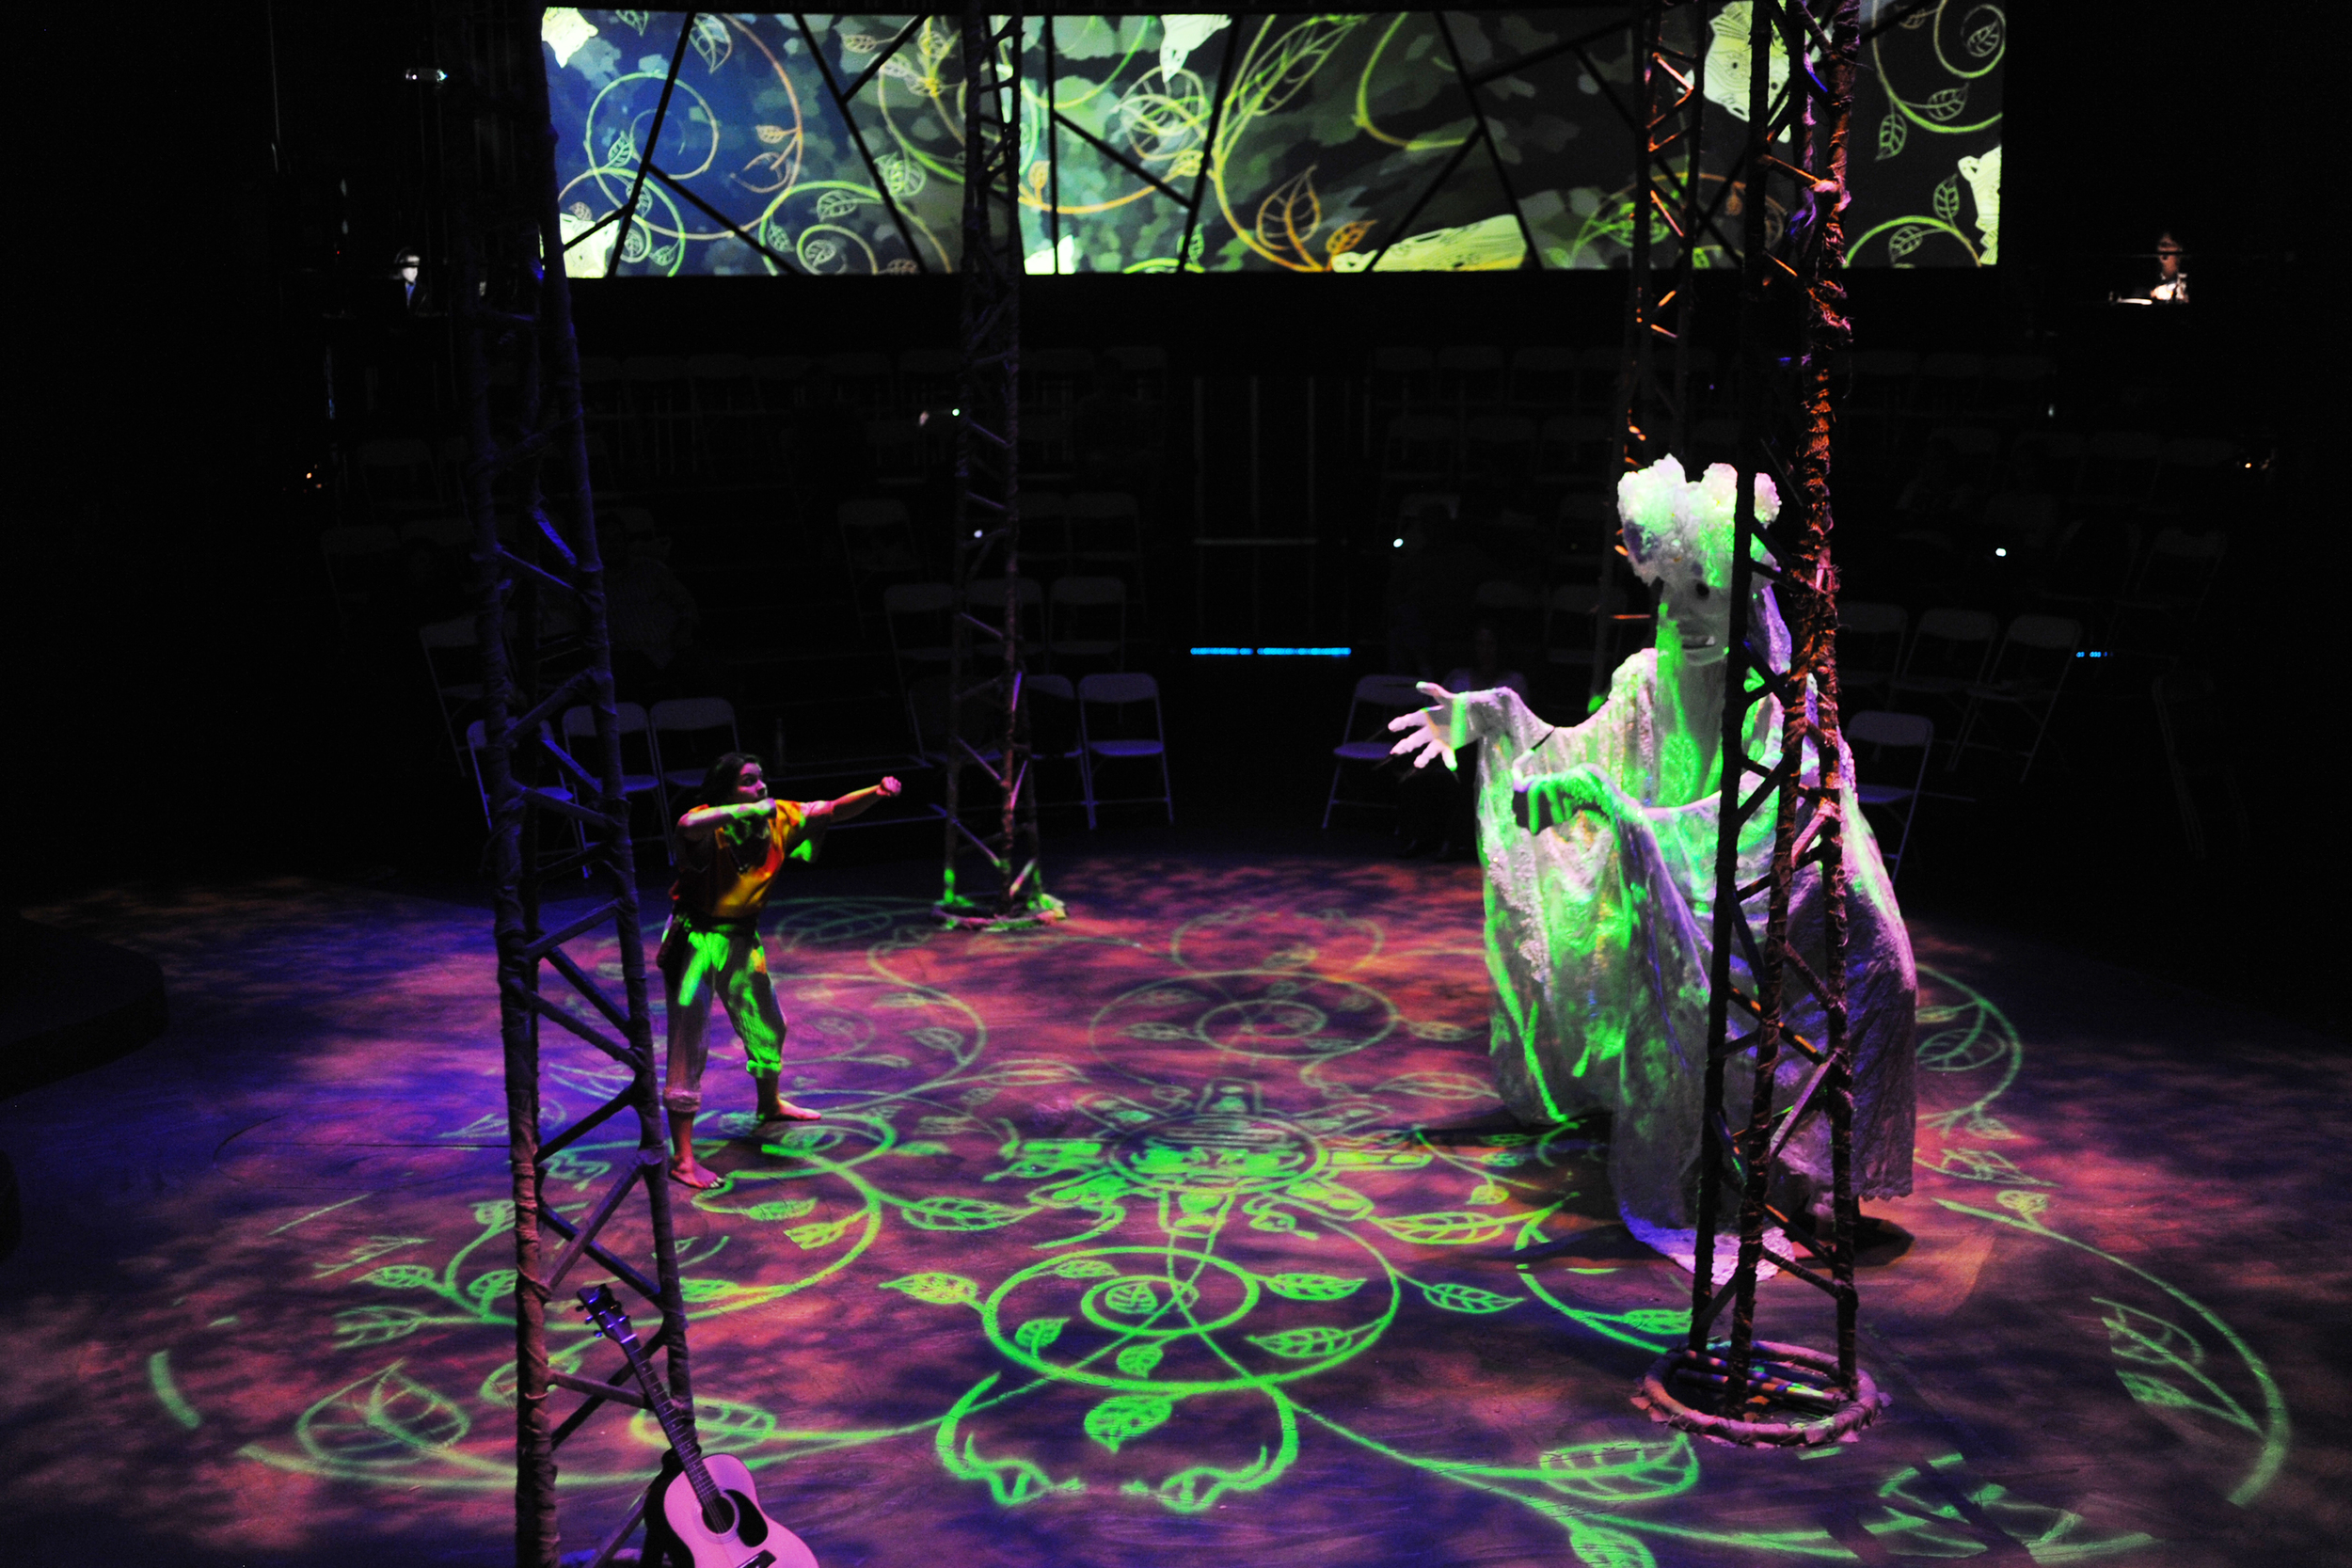 Scenic design by Jake Pinholster; Costume design by Connie Furr; Mask design by Zarco Guerrero; Lighting design by Celeste Brown; Media design by Daniel Fine with Matthew Ragan.Photo credit: Tim Trumble.